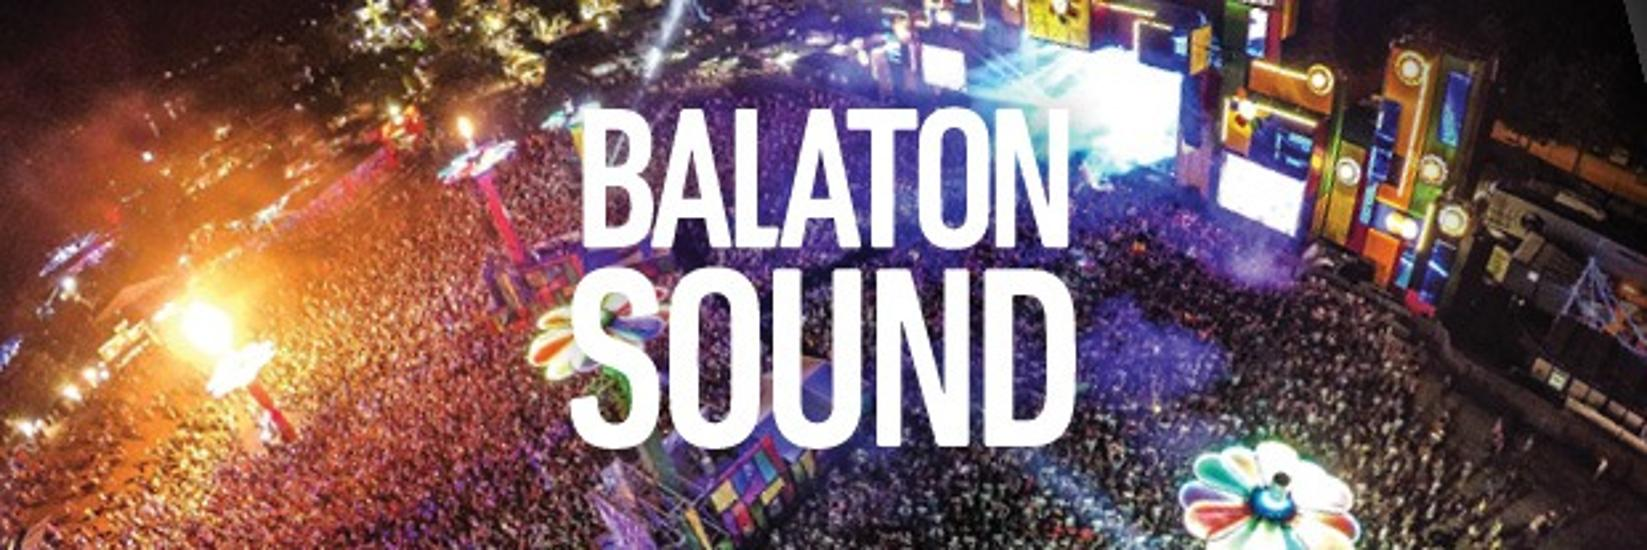 New Names Announced For Balaton Sound 2016